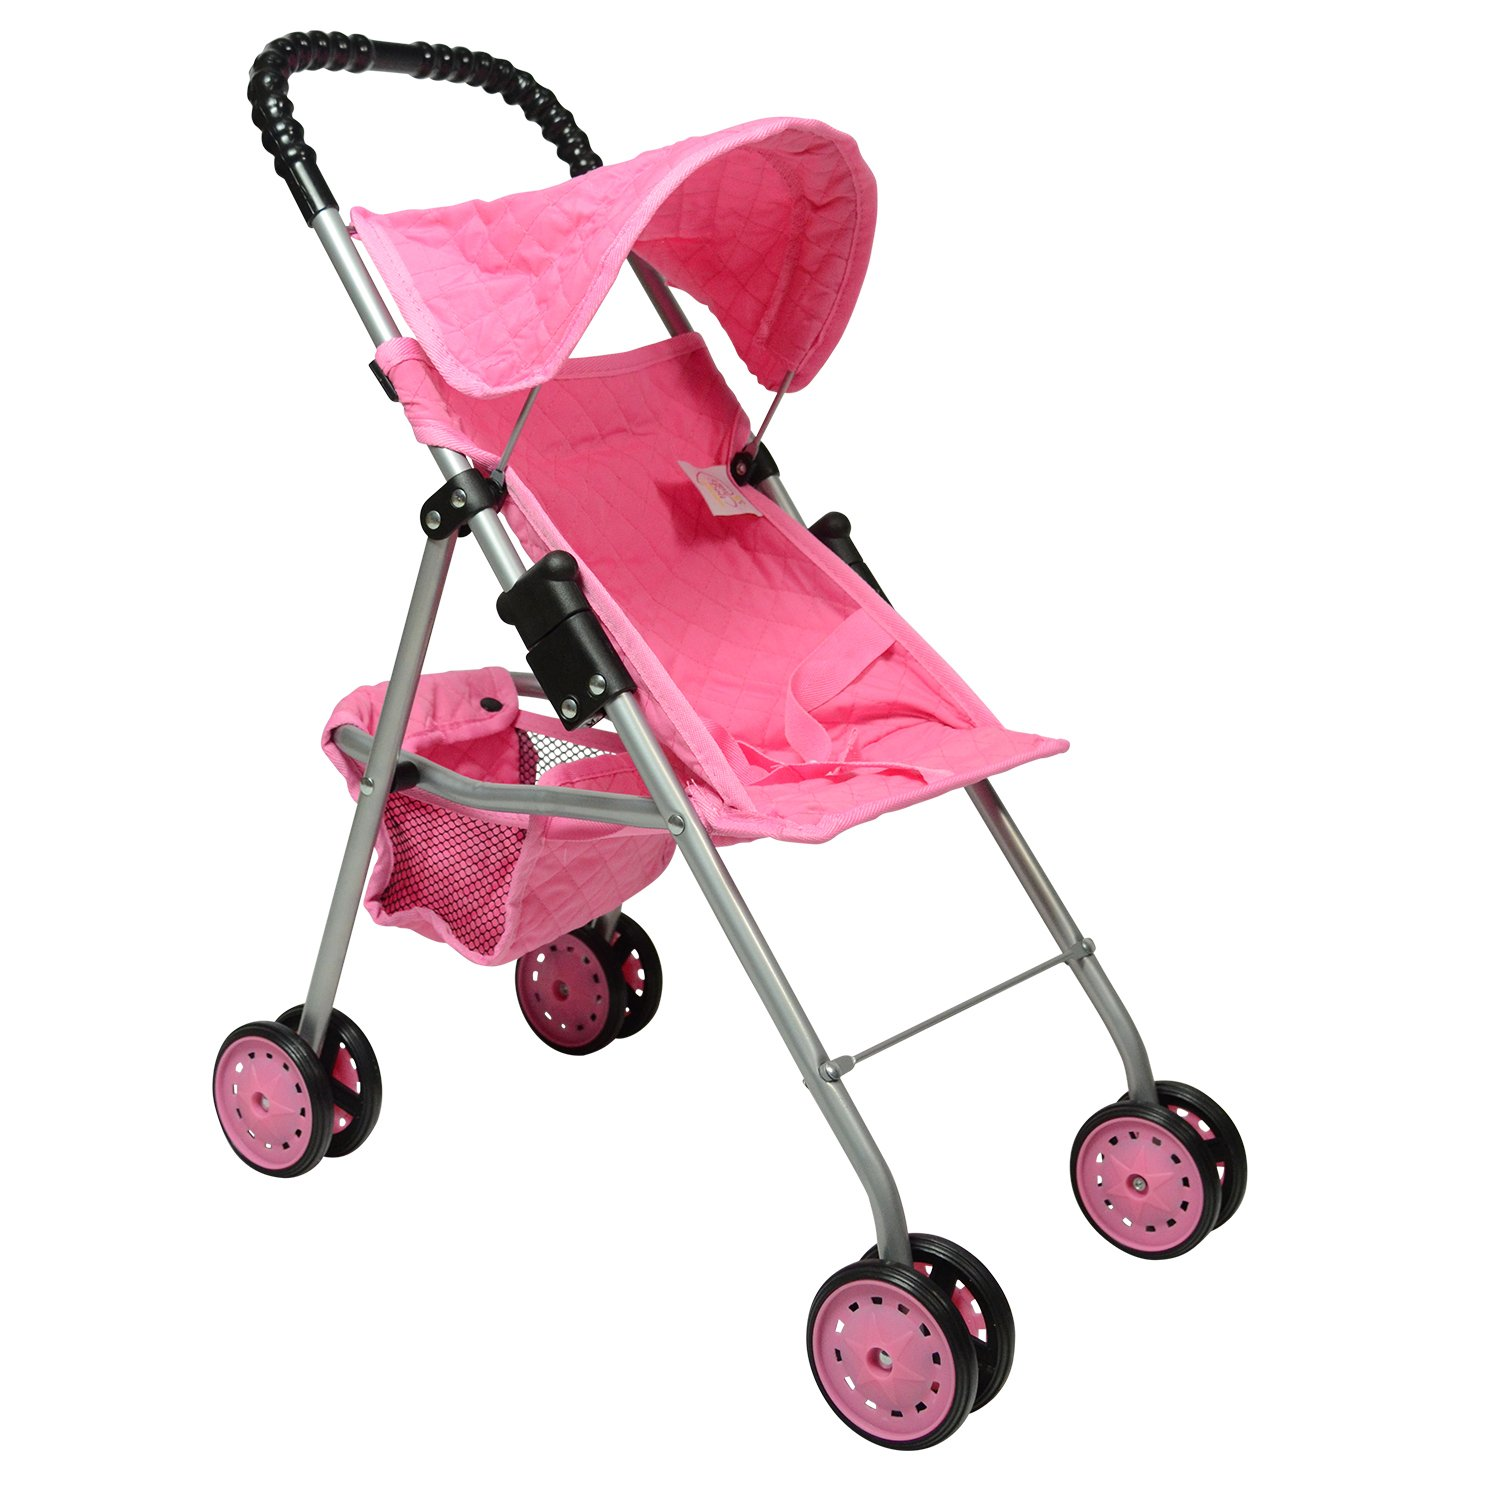 First Doll Stroller for Kids (Pink Quilted) by The New York Doll Collection